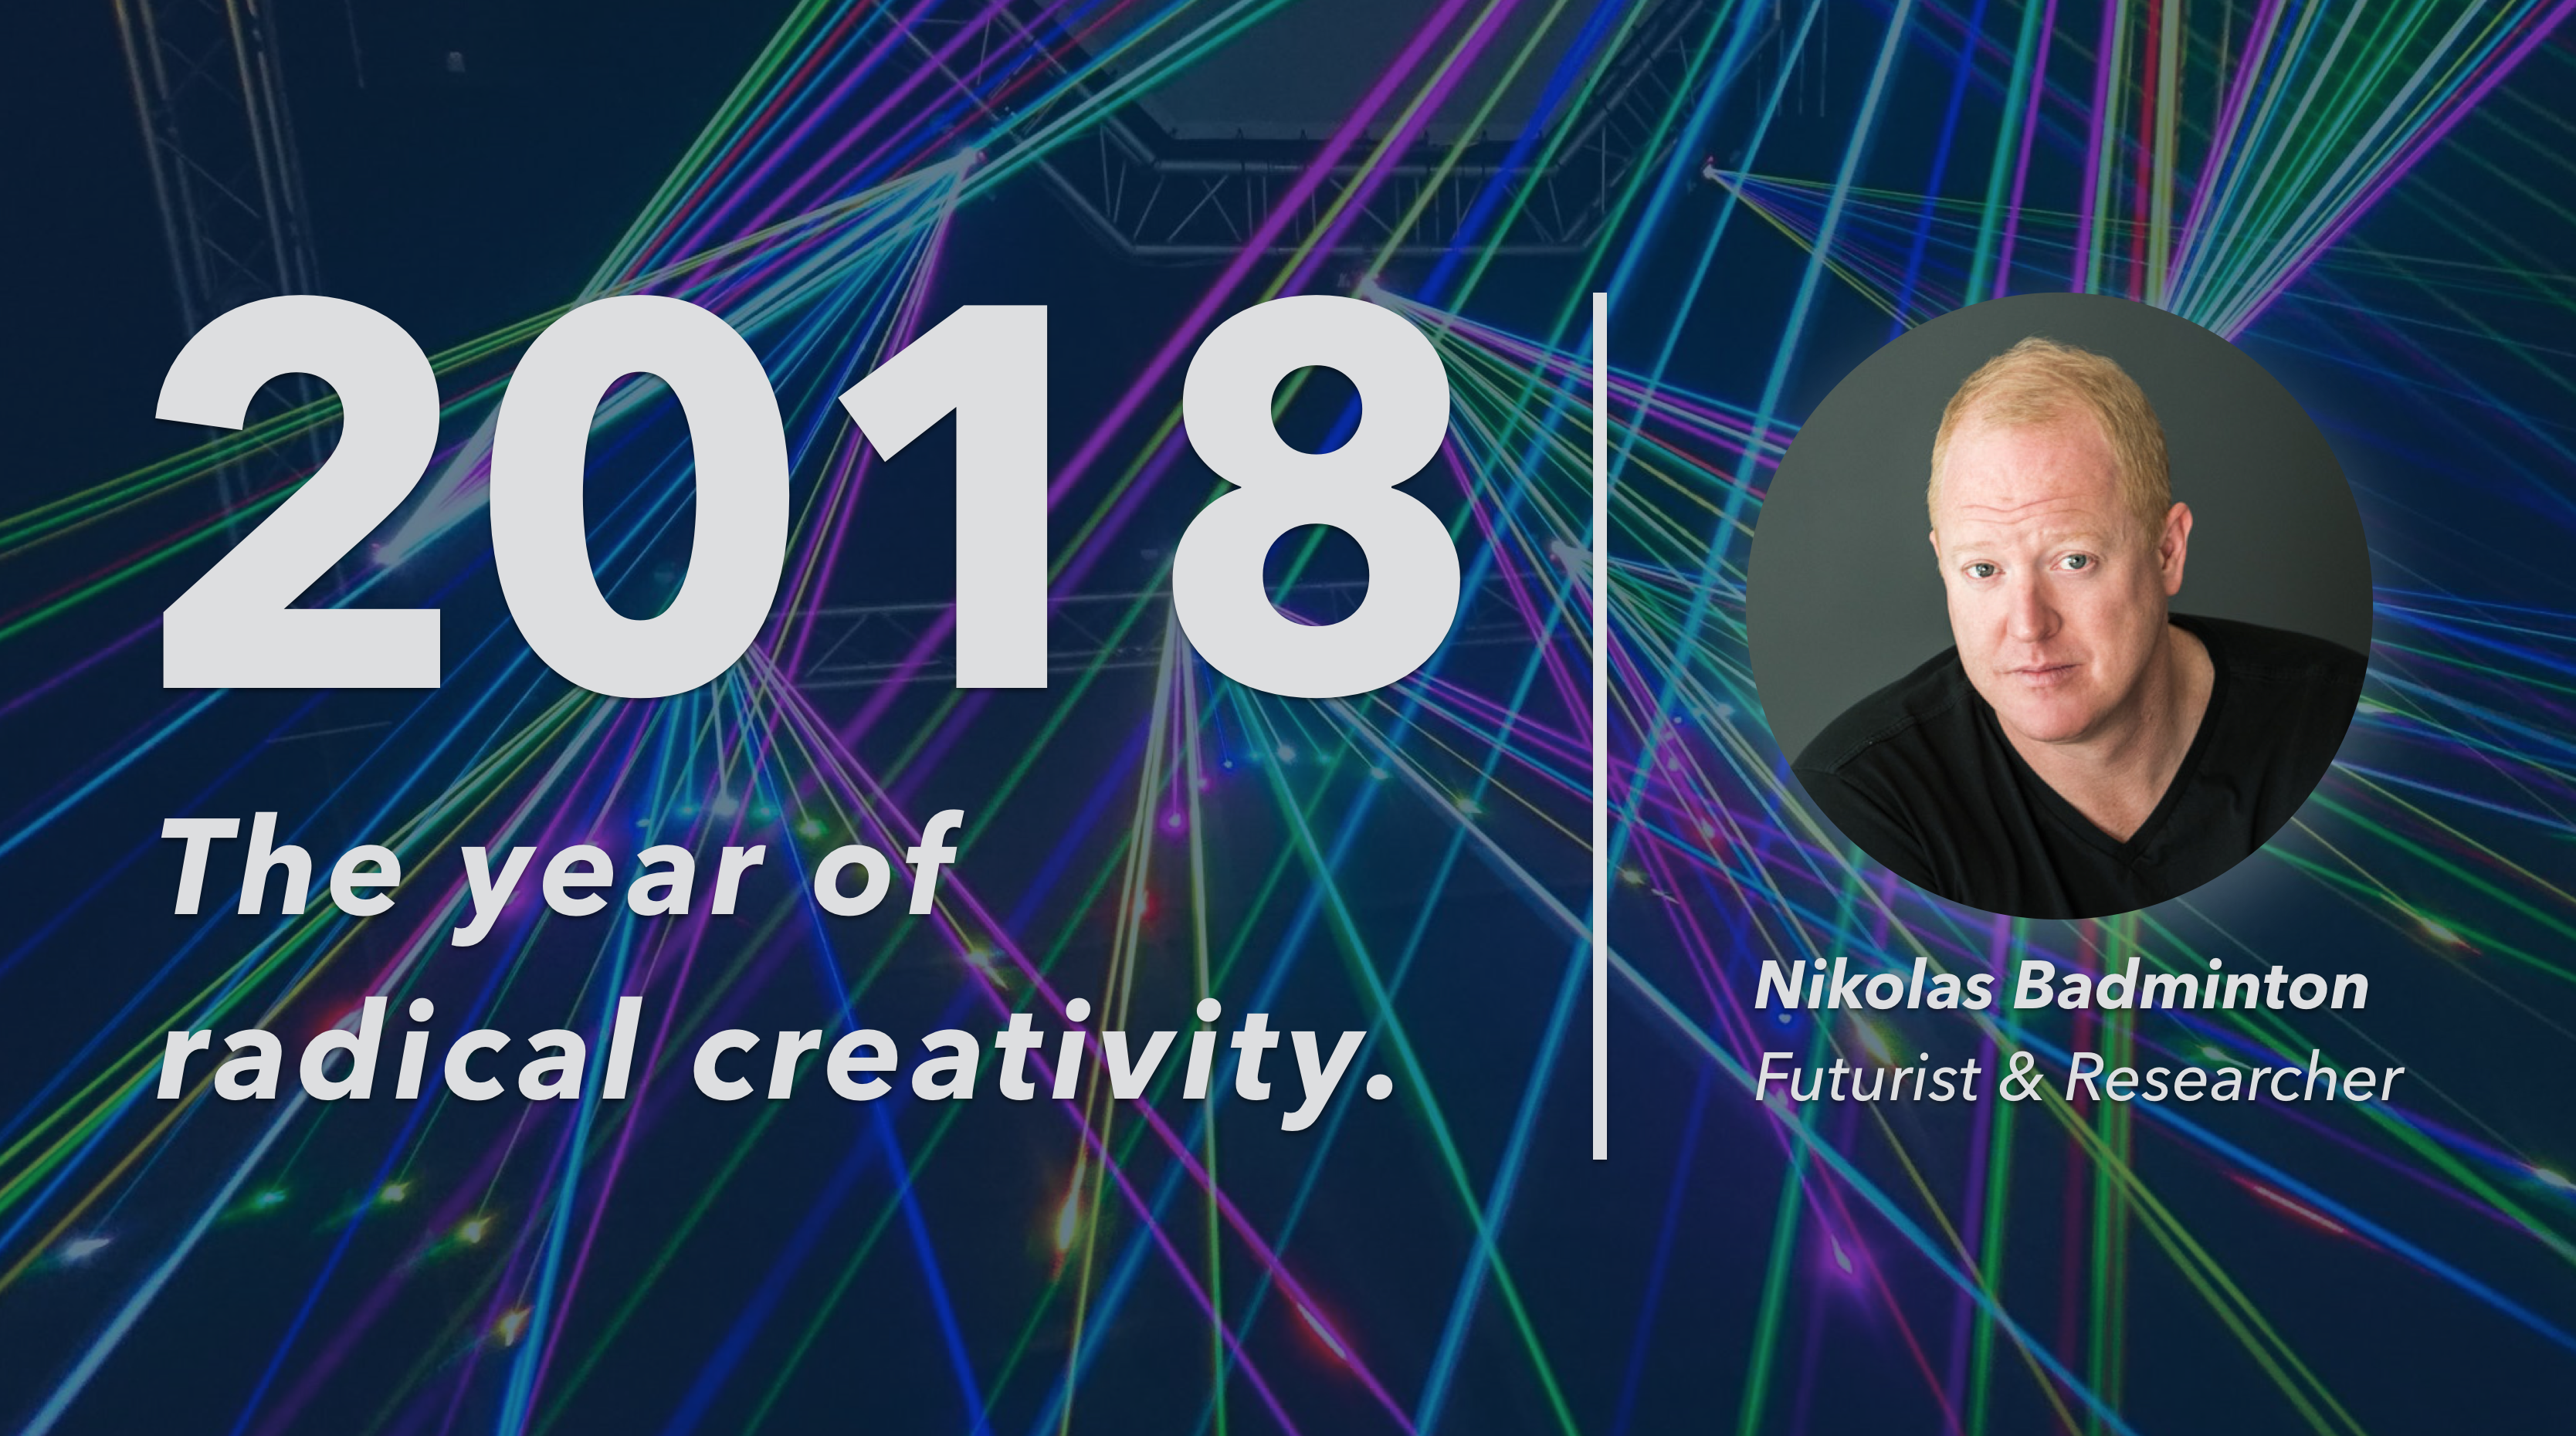 2018: The Year of Radical Creativity by Nikolas Badminton, Futurist & Researcher